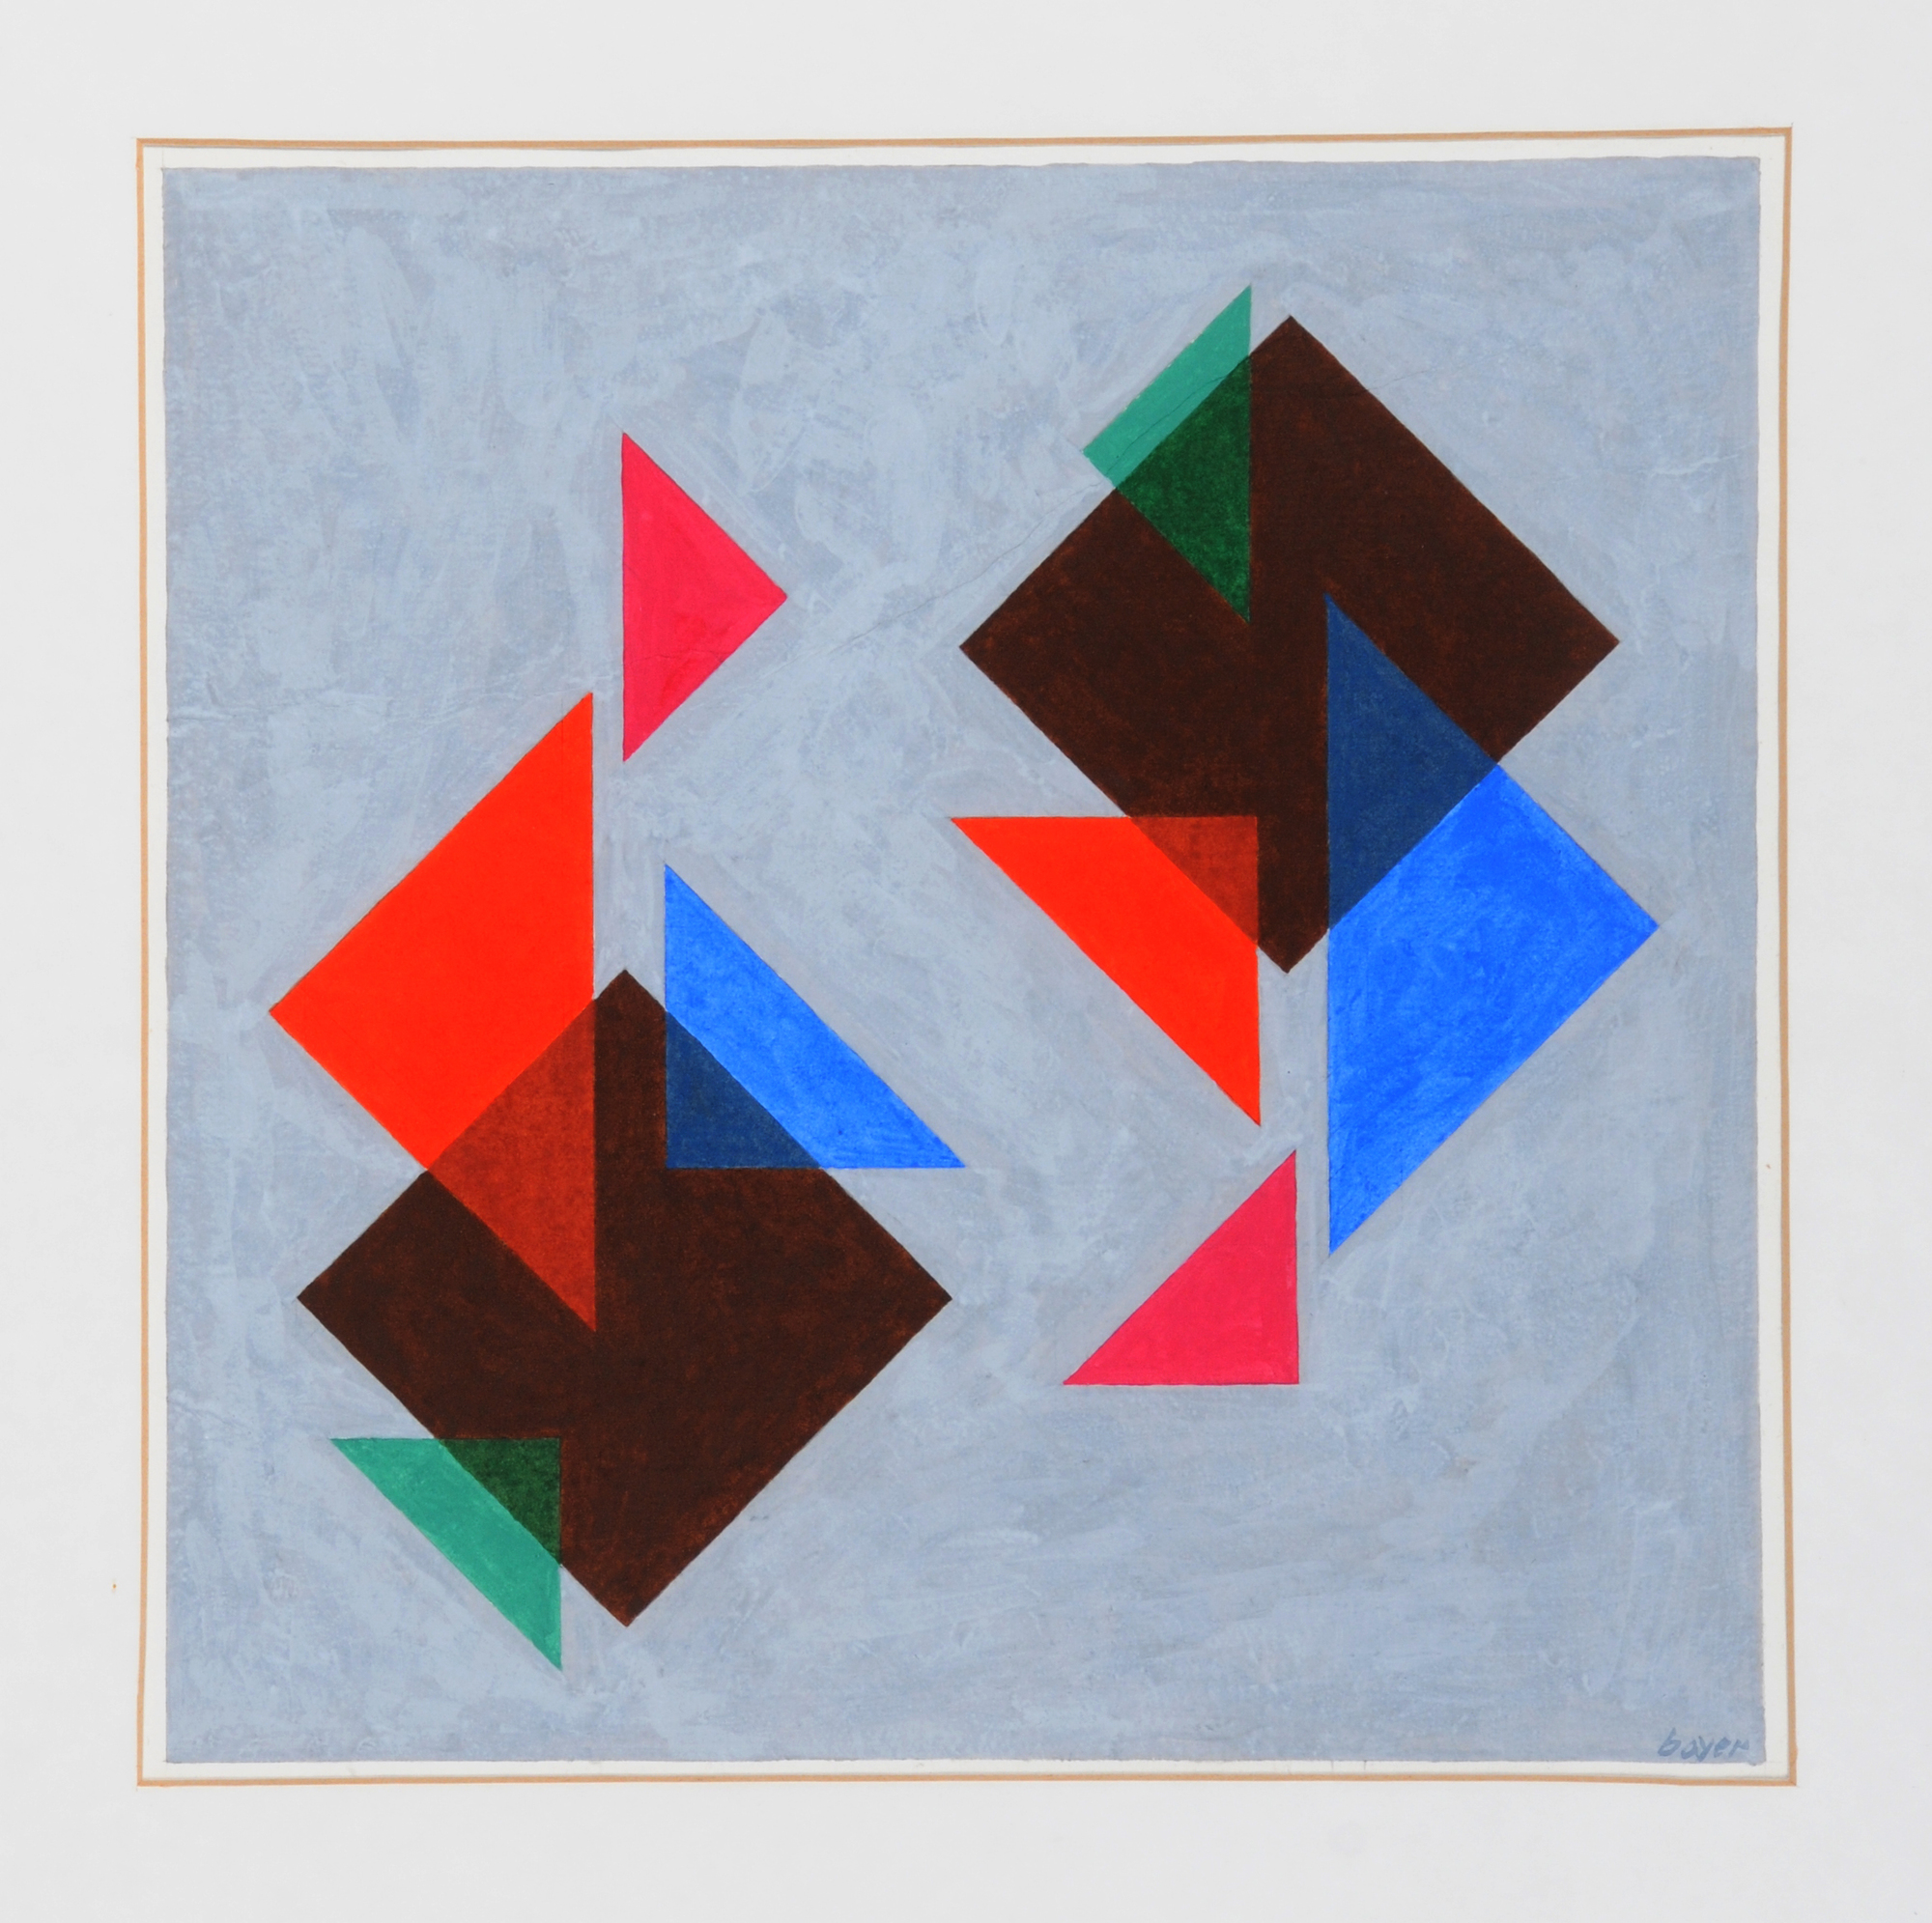 Bayer Herbert, Squares and their Triangles